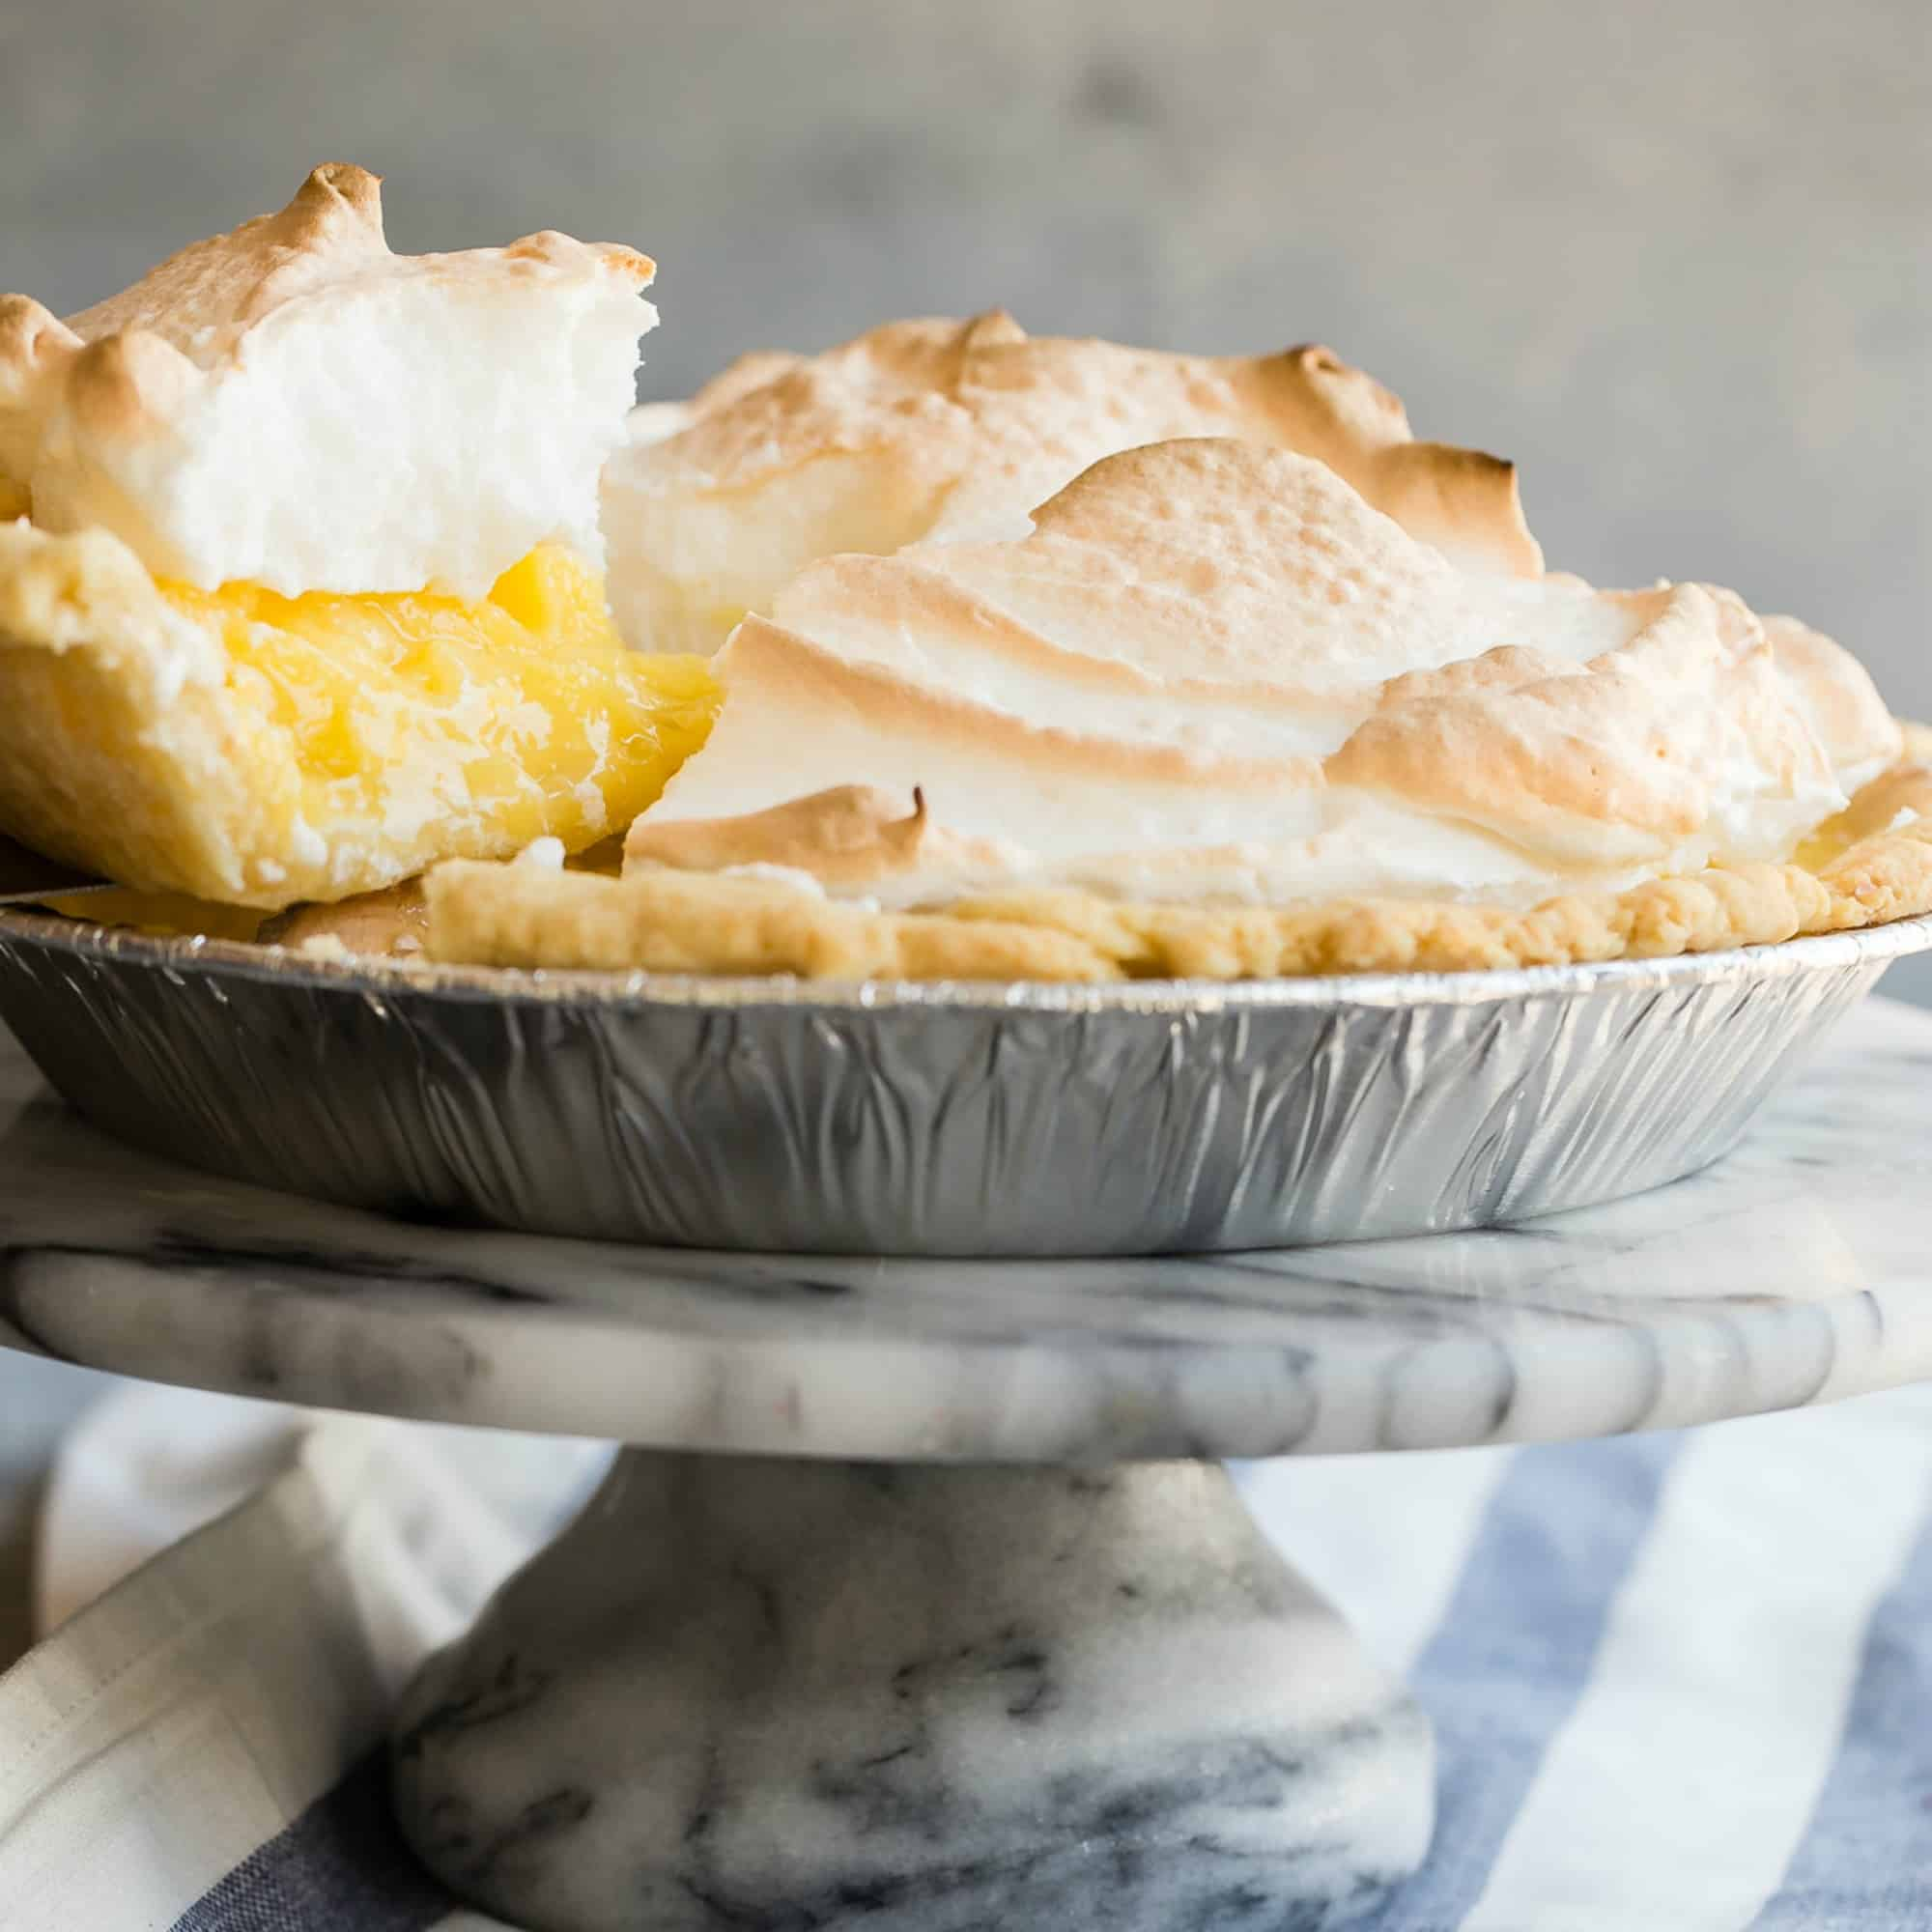 A good lemon meringue pie is the stuff dreams are made of. Just one look at this swoon-worthy dessert, with its tall, glossy peaks and tart lemon custard and you'll want— no, need— an extra large slice.Maybe you should make two...